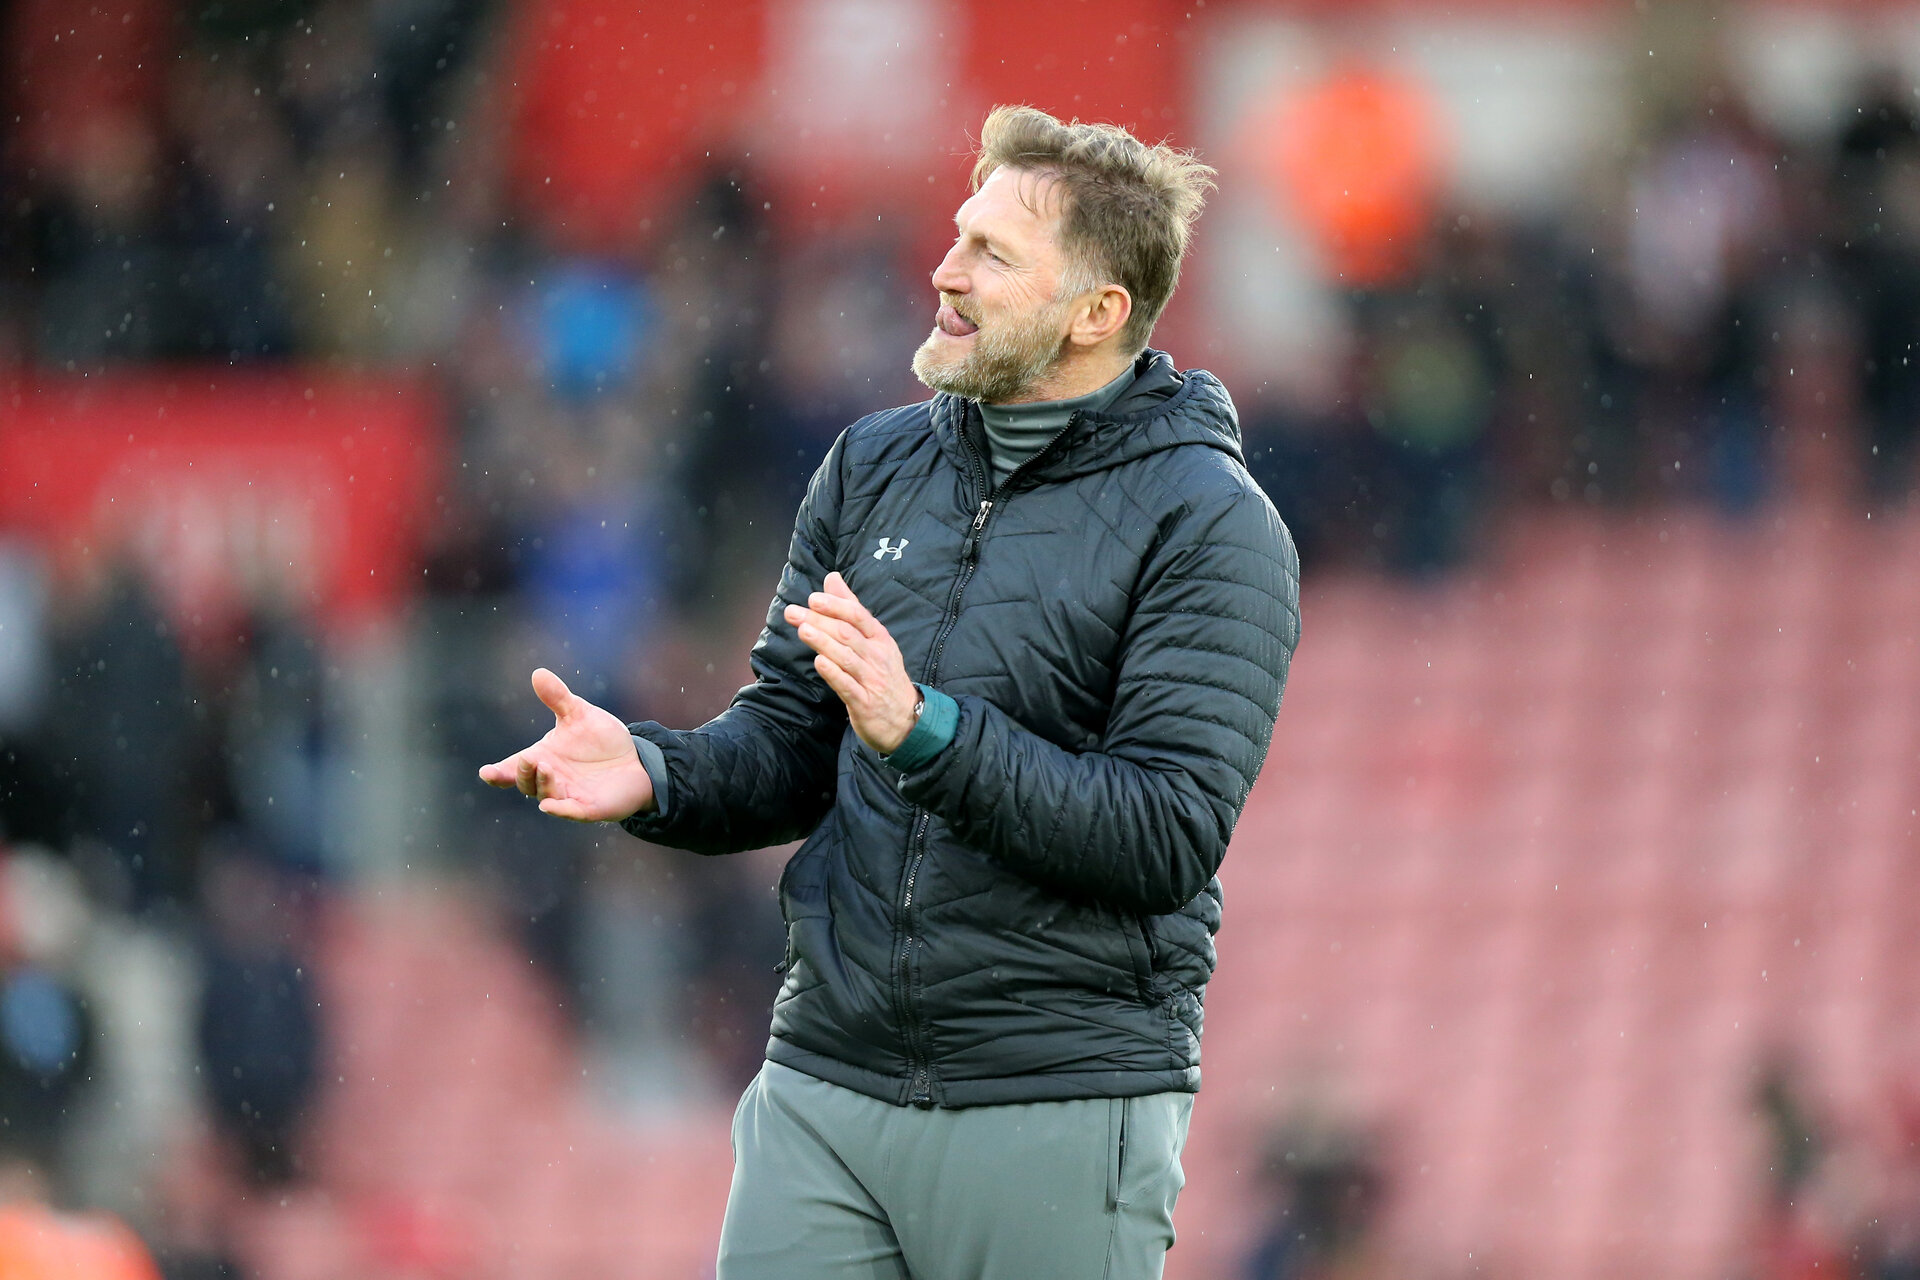 SOUTHAMPTON, ENGLAND - FEBRUARY 22: Ralph Hasenhüttl during the Premier League match between Southampton FC and Aston Villa at St Mary's Stadium on February 22, 2020 in Southampton, United Kingdom. (Photo by Chris Moorhouse/Southampton FC via Getty Images)